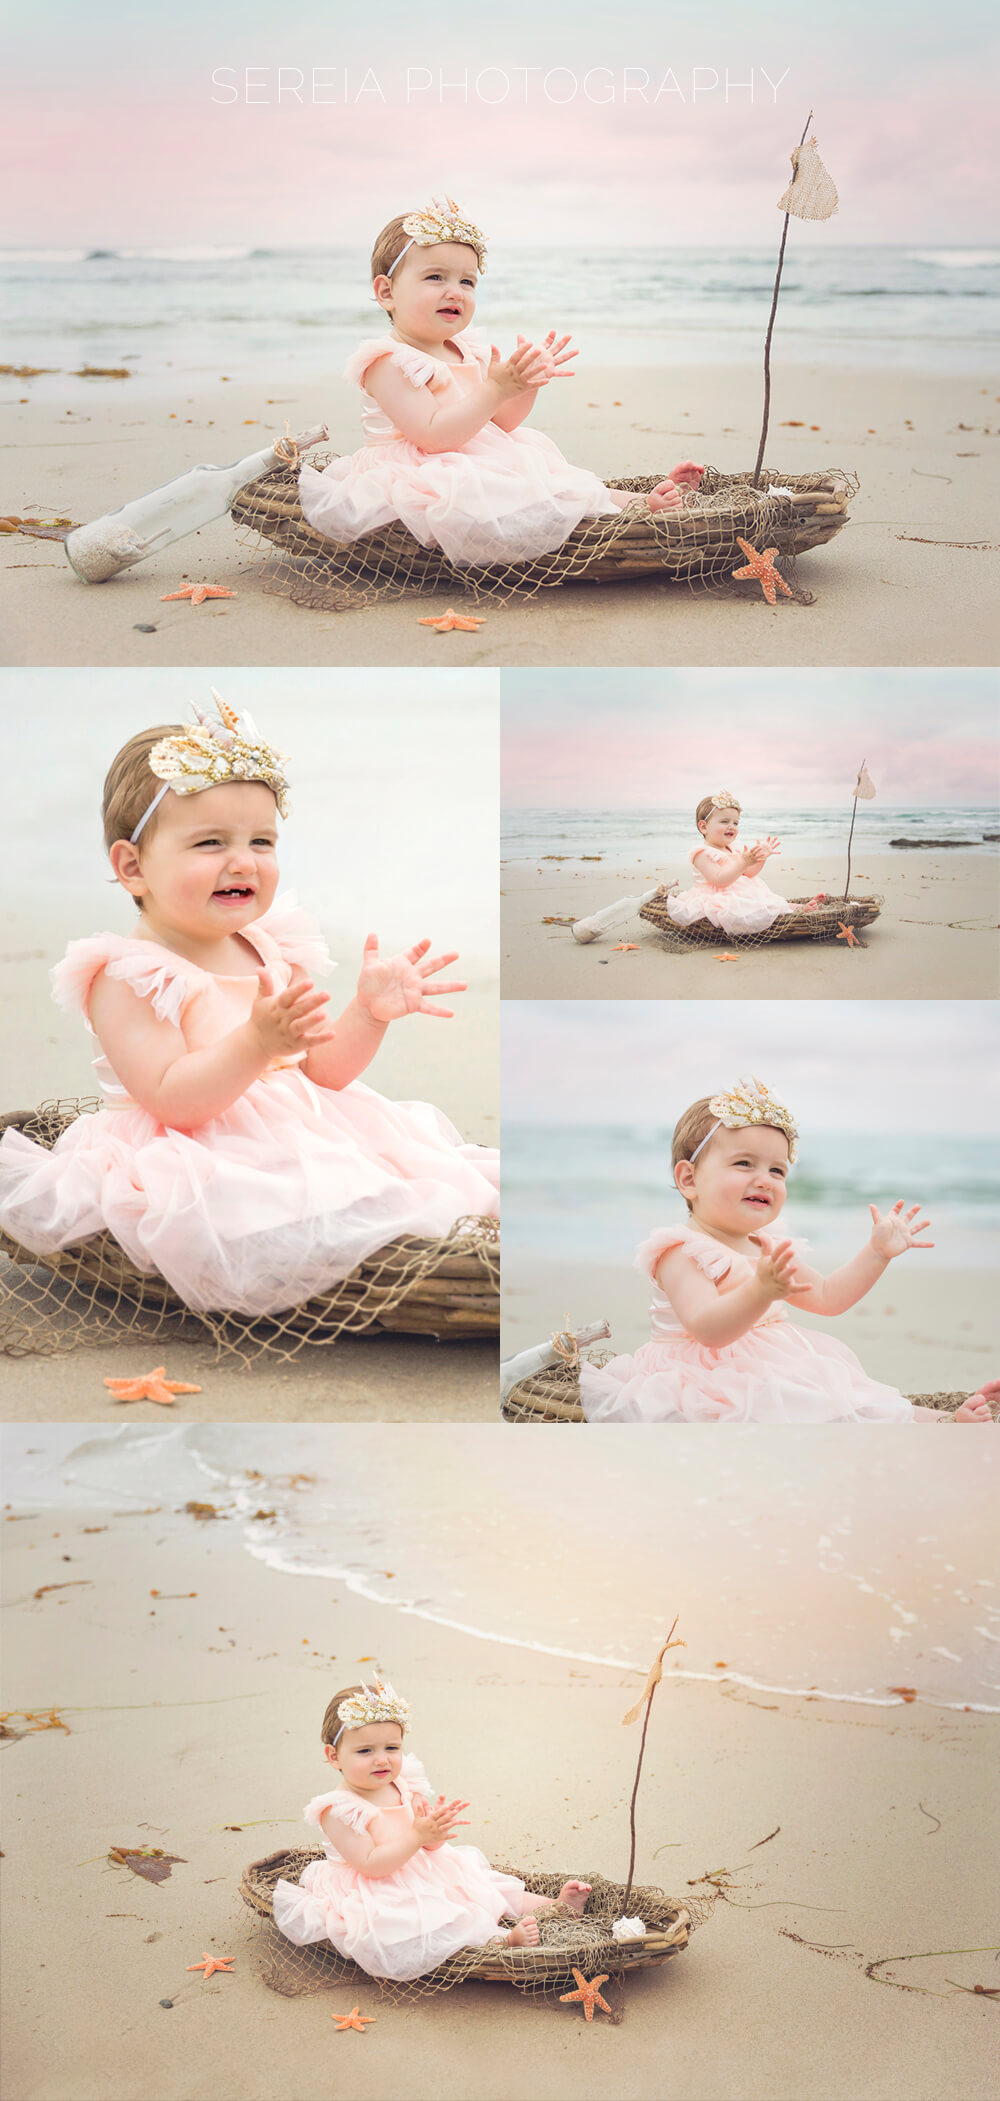 Mermaid Photo Session - La Jolla Baby Photographer